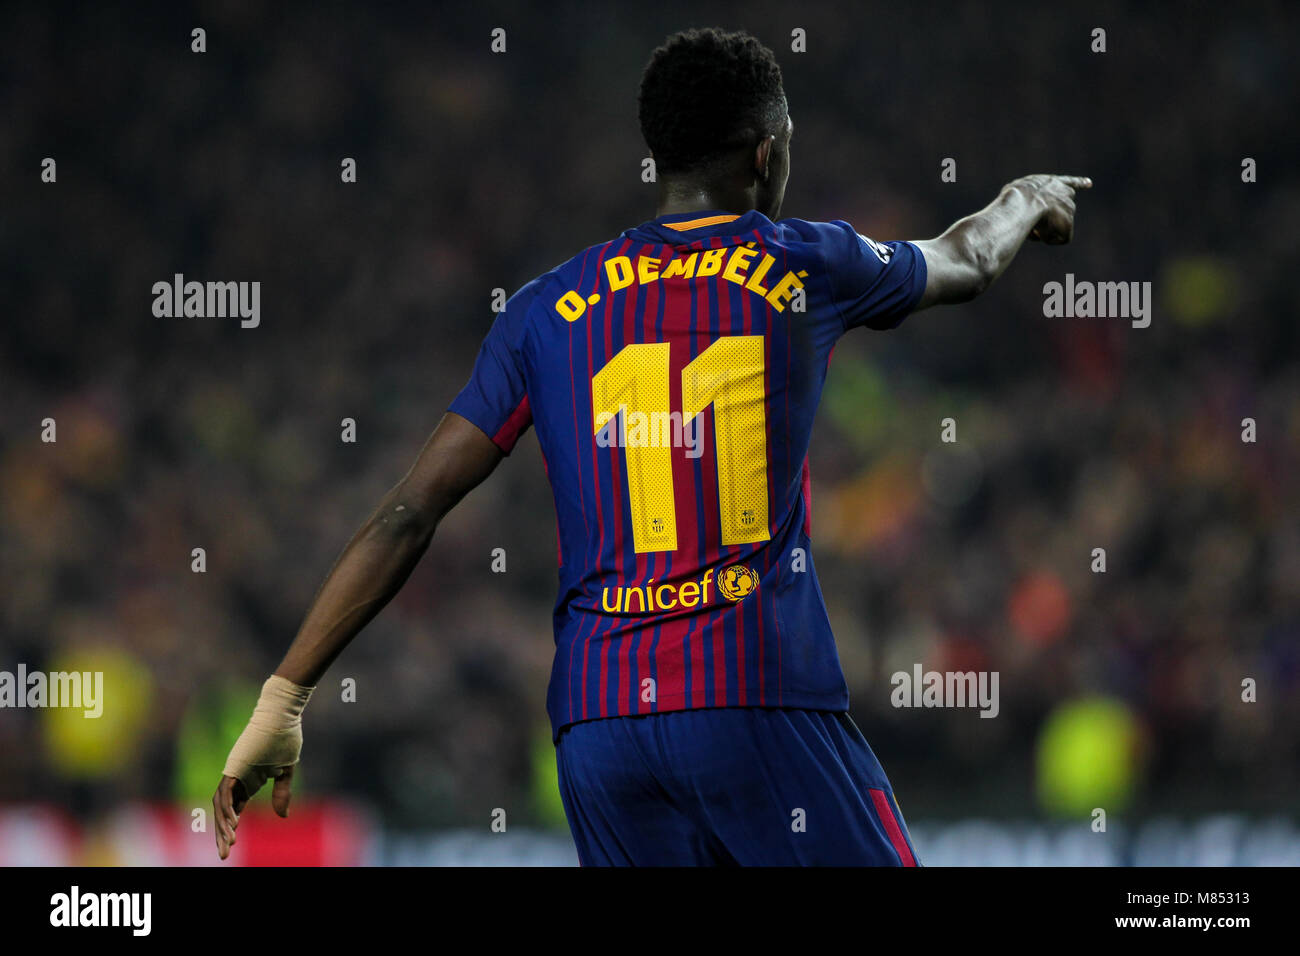 f44760a29e6 Barcelona, Spain. 14th Mar, 2018. 14th March 2018; Ousmane Dembele, #11  player of FC Barcelona celebrates his goal during the 2017/2018 UEFA  Champions ...